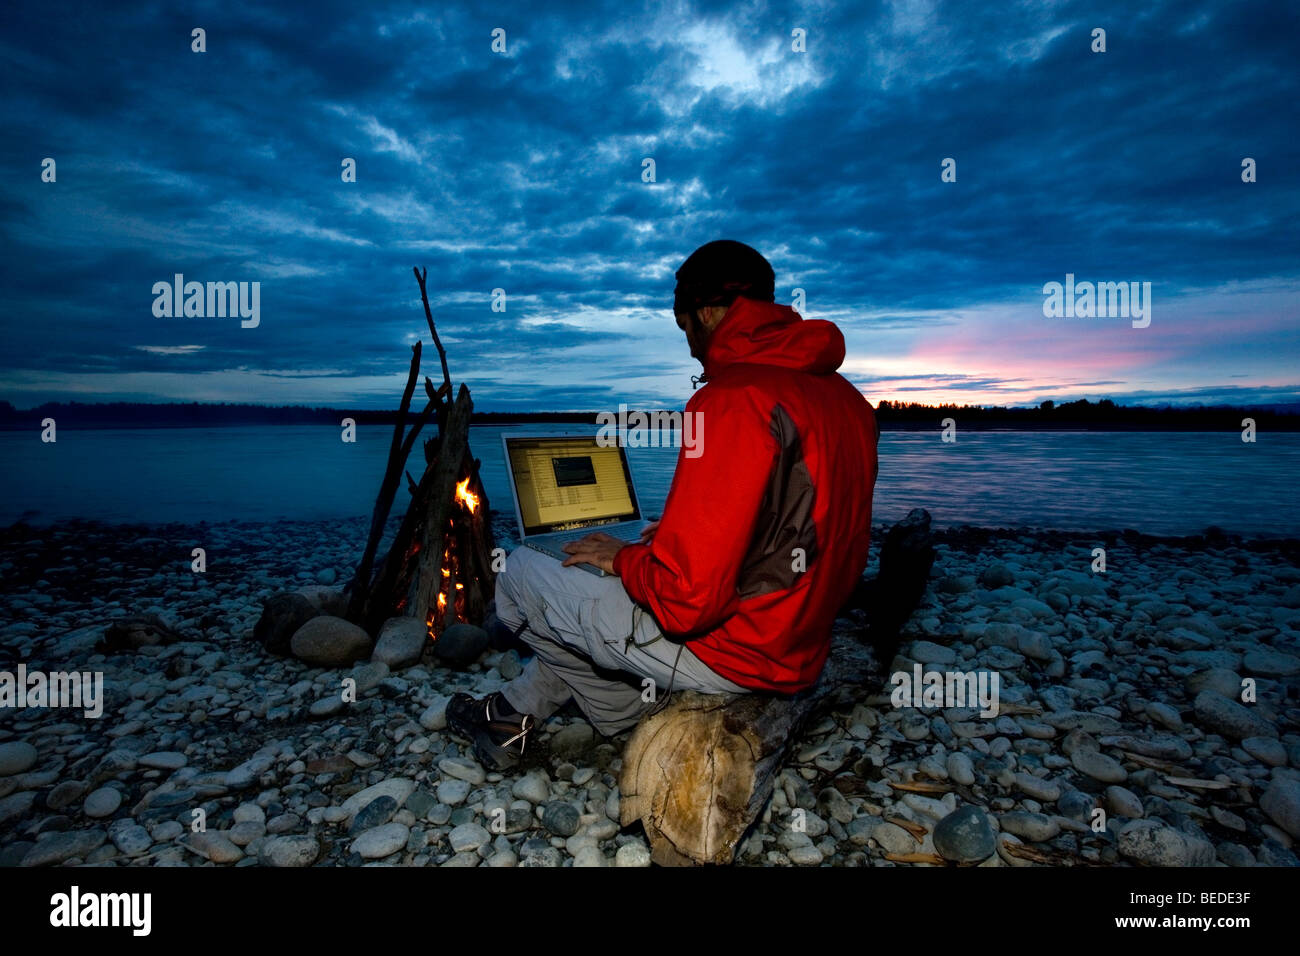 Nature photographer at work in the evening next to a campfire, Alaska, USA, North America Stock Photo